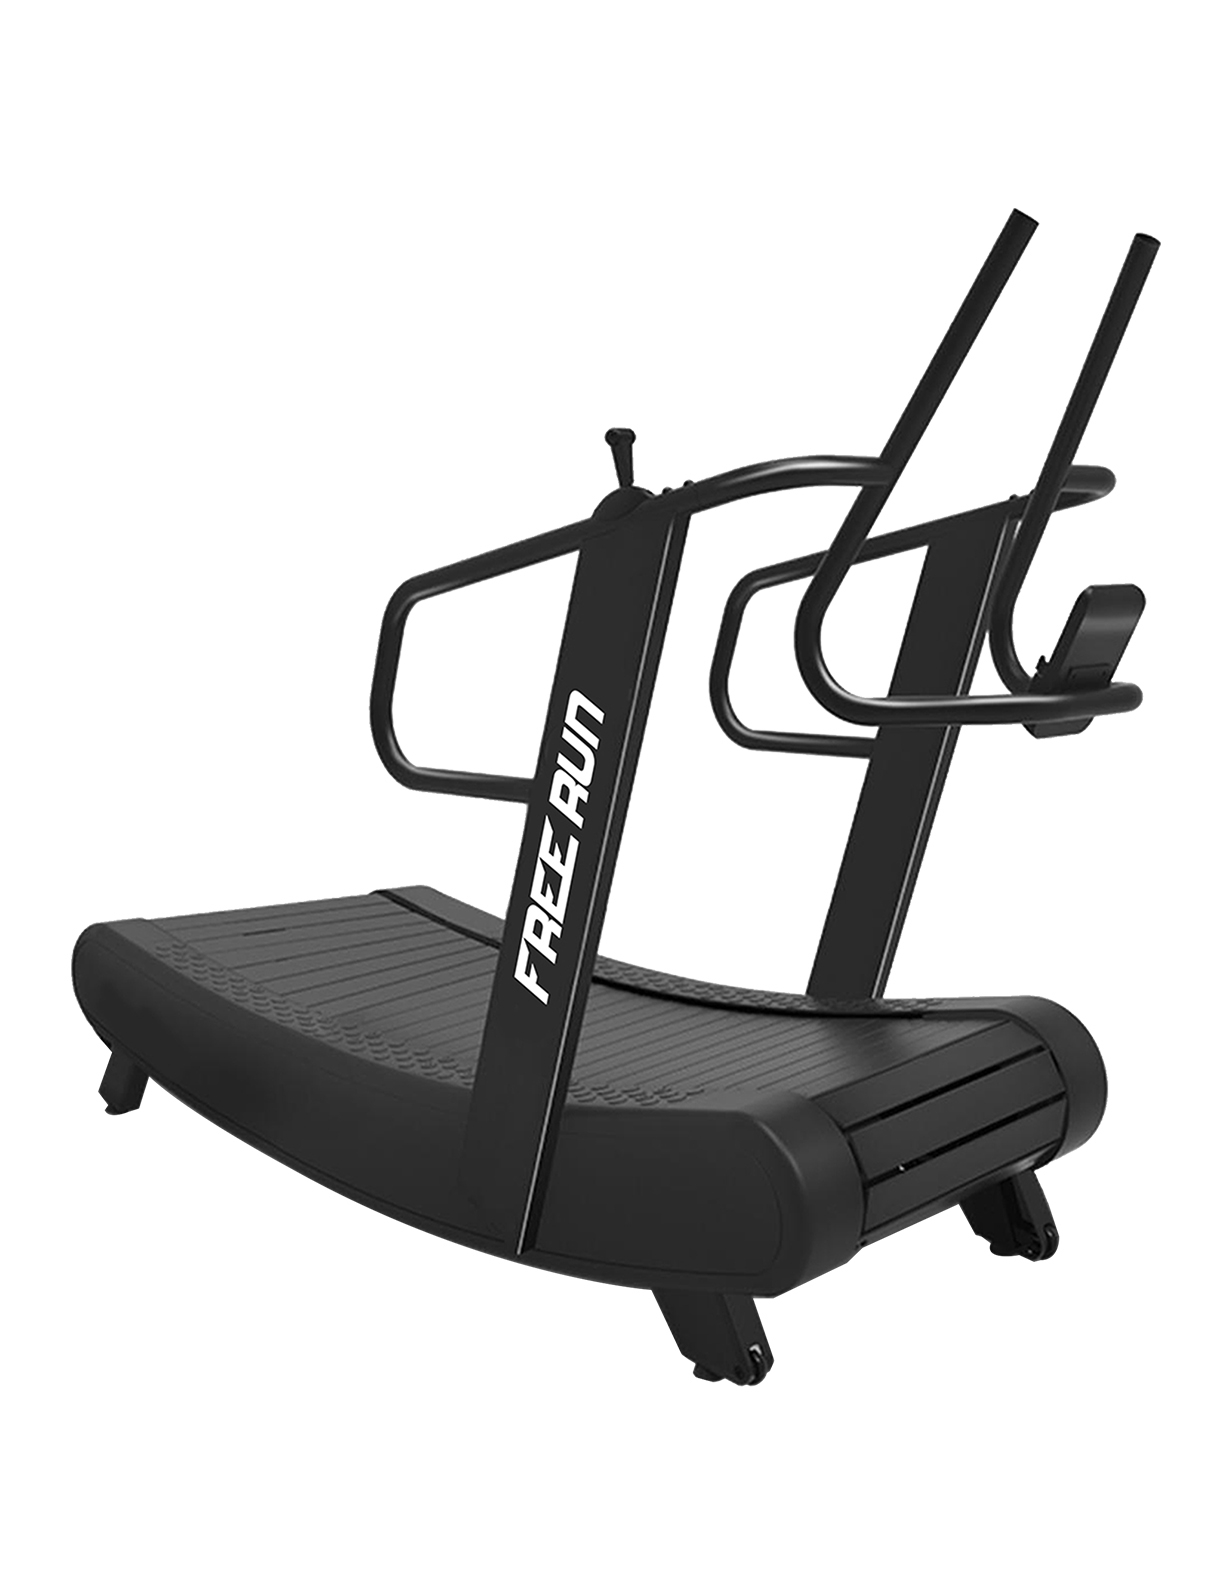 Fitness Equipment in Coimbatore | Gym Equipment | Fitness